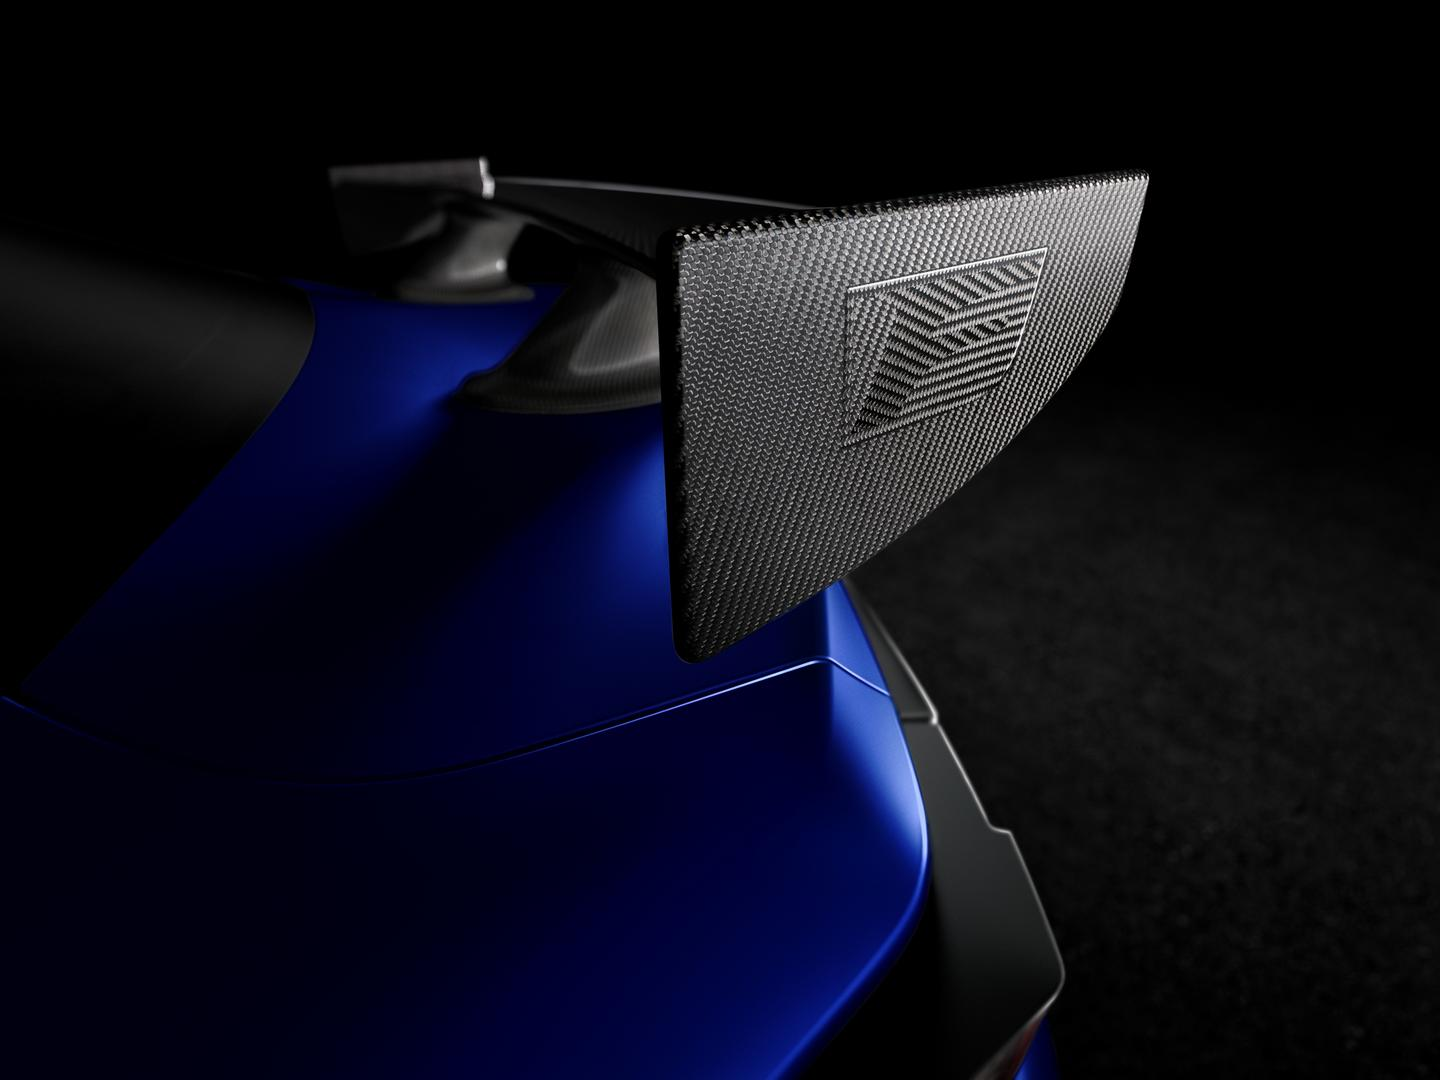 RC F rear wing carbon